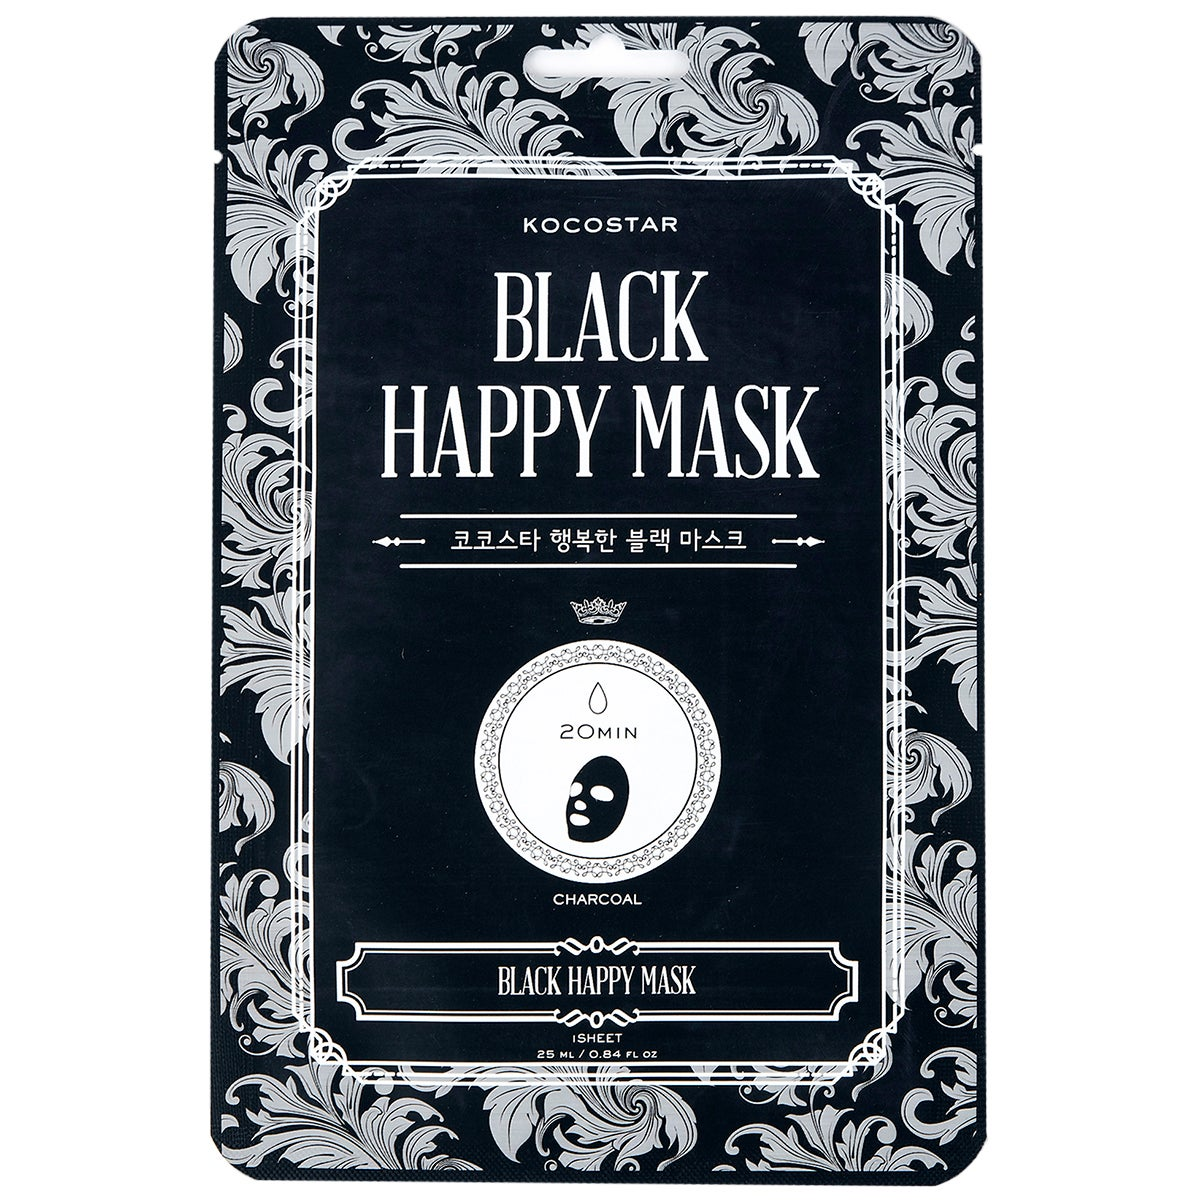 Kocostar KOCOSTAR Black Happy Mask